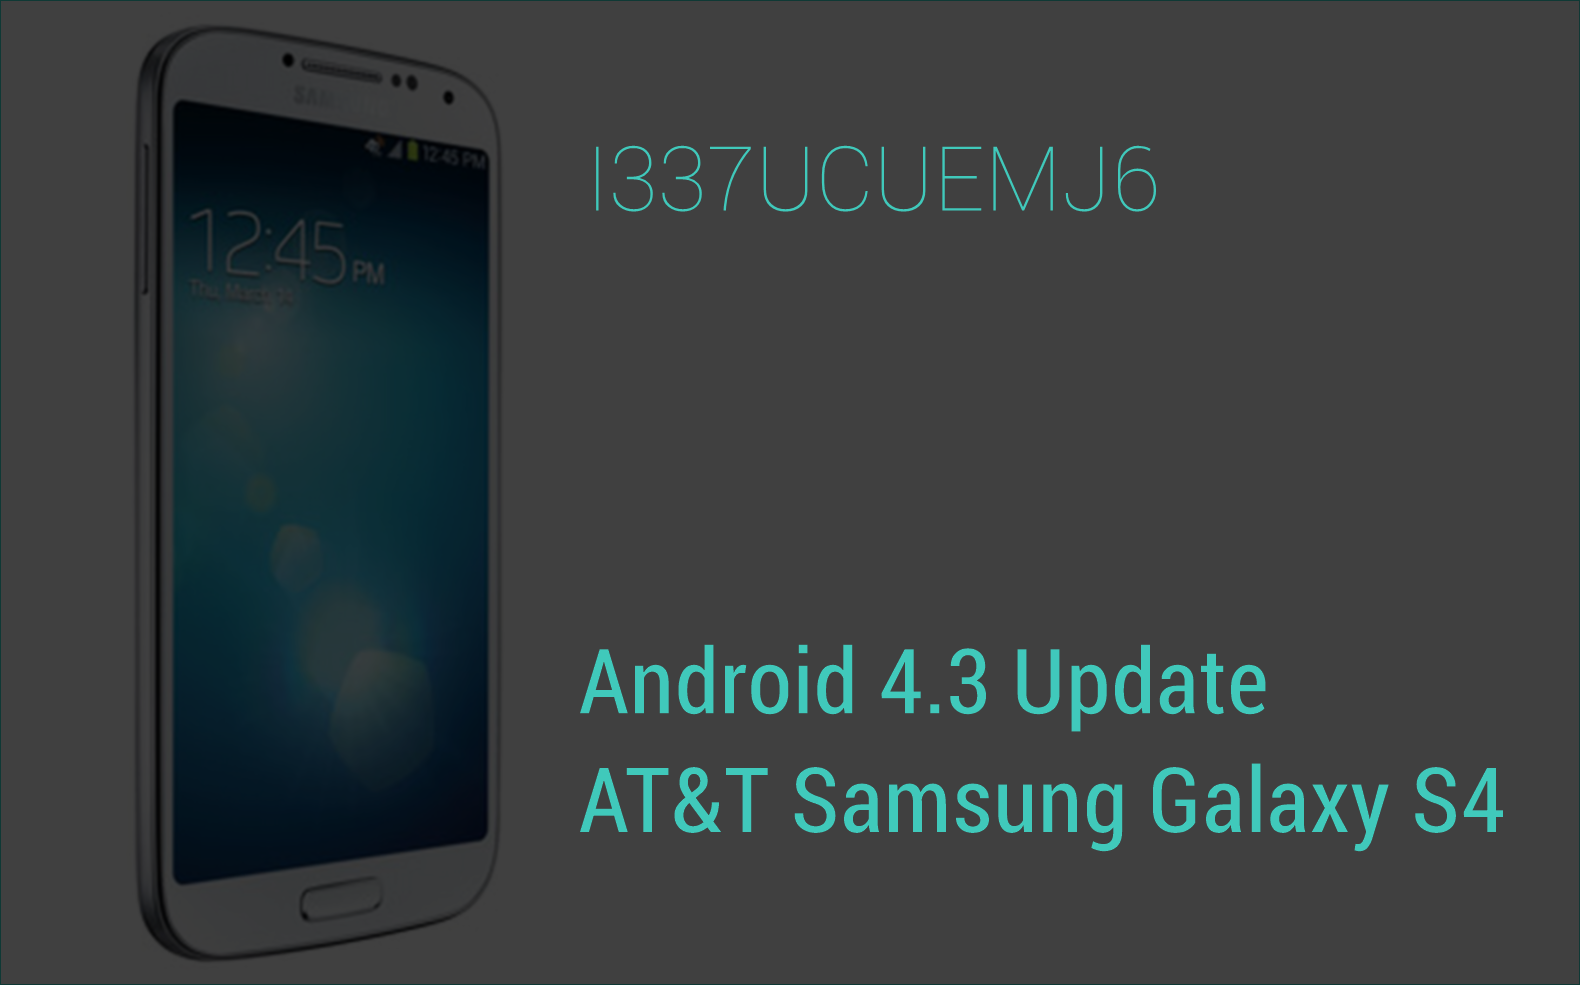 Android 4.3 Update for AT&T Galaxy S4 SGH-I337